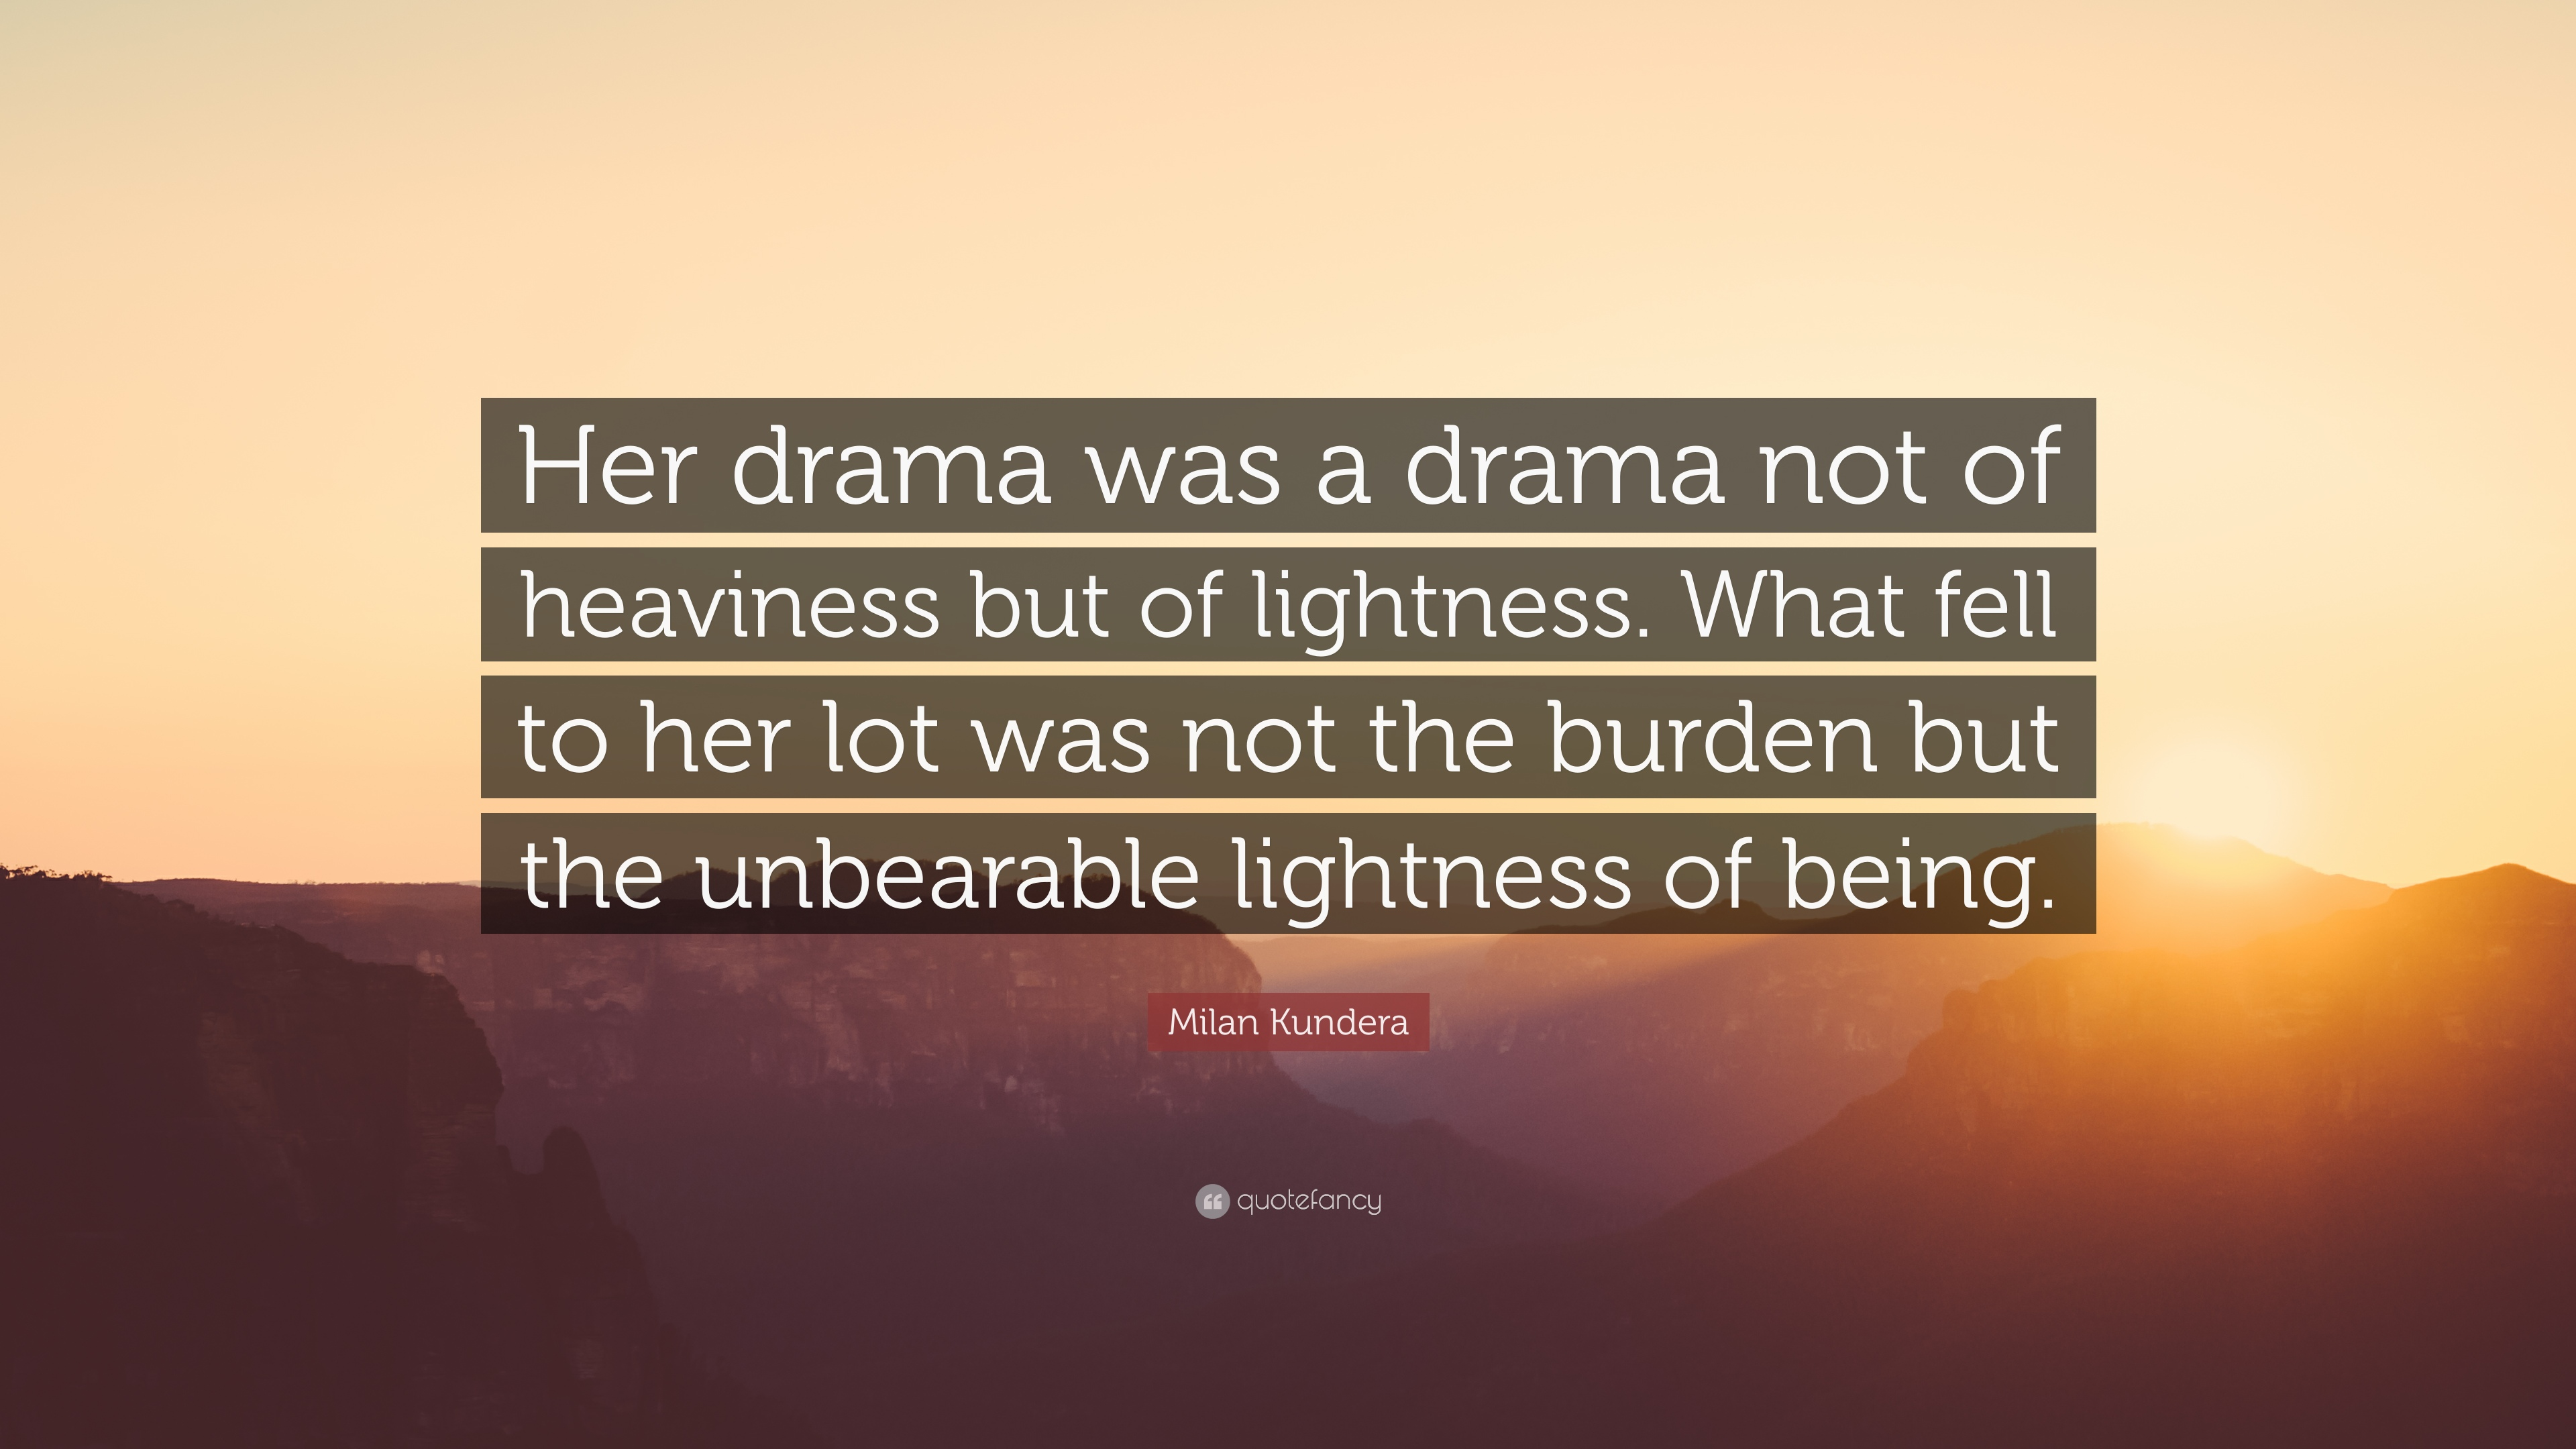 an analysis of the unbearable lightness of being by milan kundera Milan kundera's masterful novel, the unbearable lightness of being  from  kundera about what a word means in his own interpretation and i.